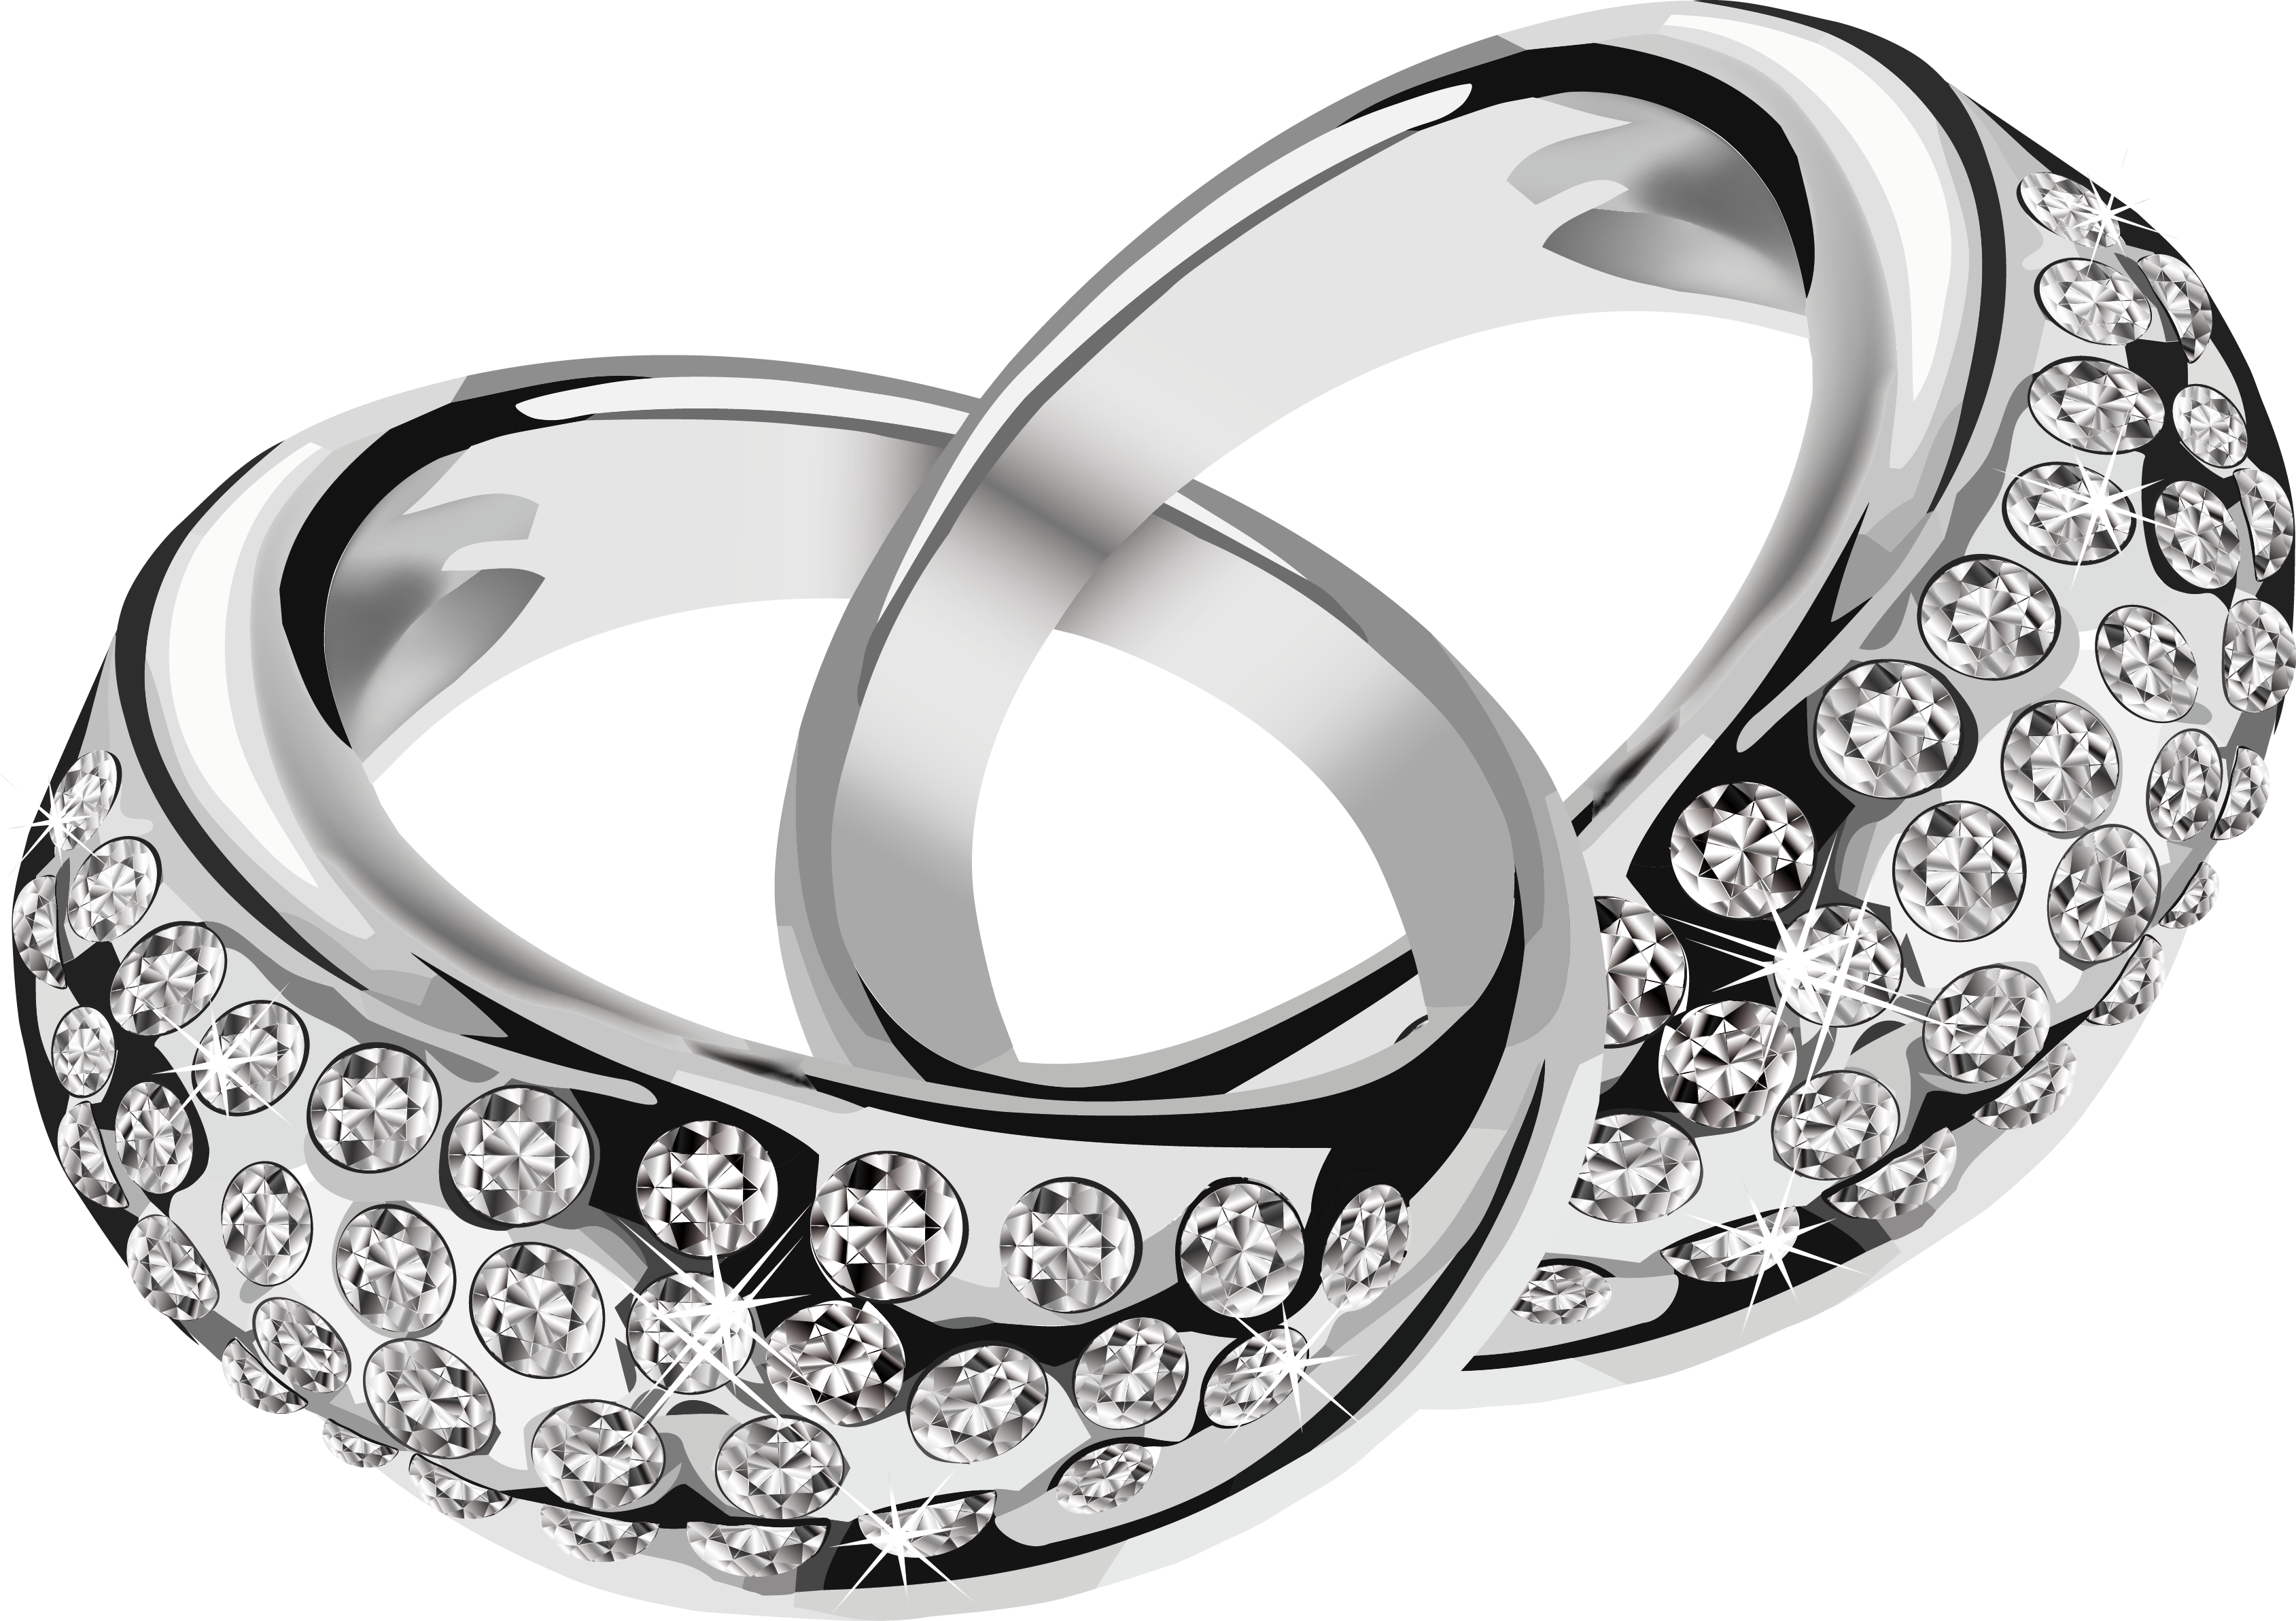 silver rings with diamonds PNG.